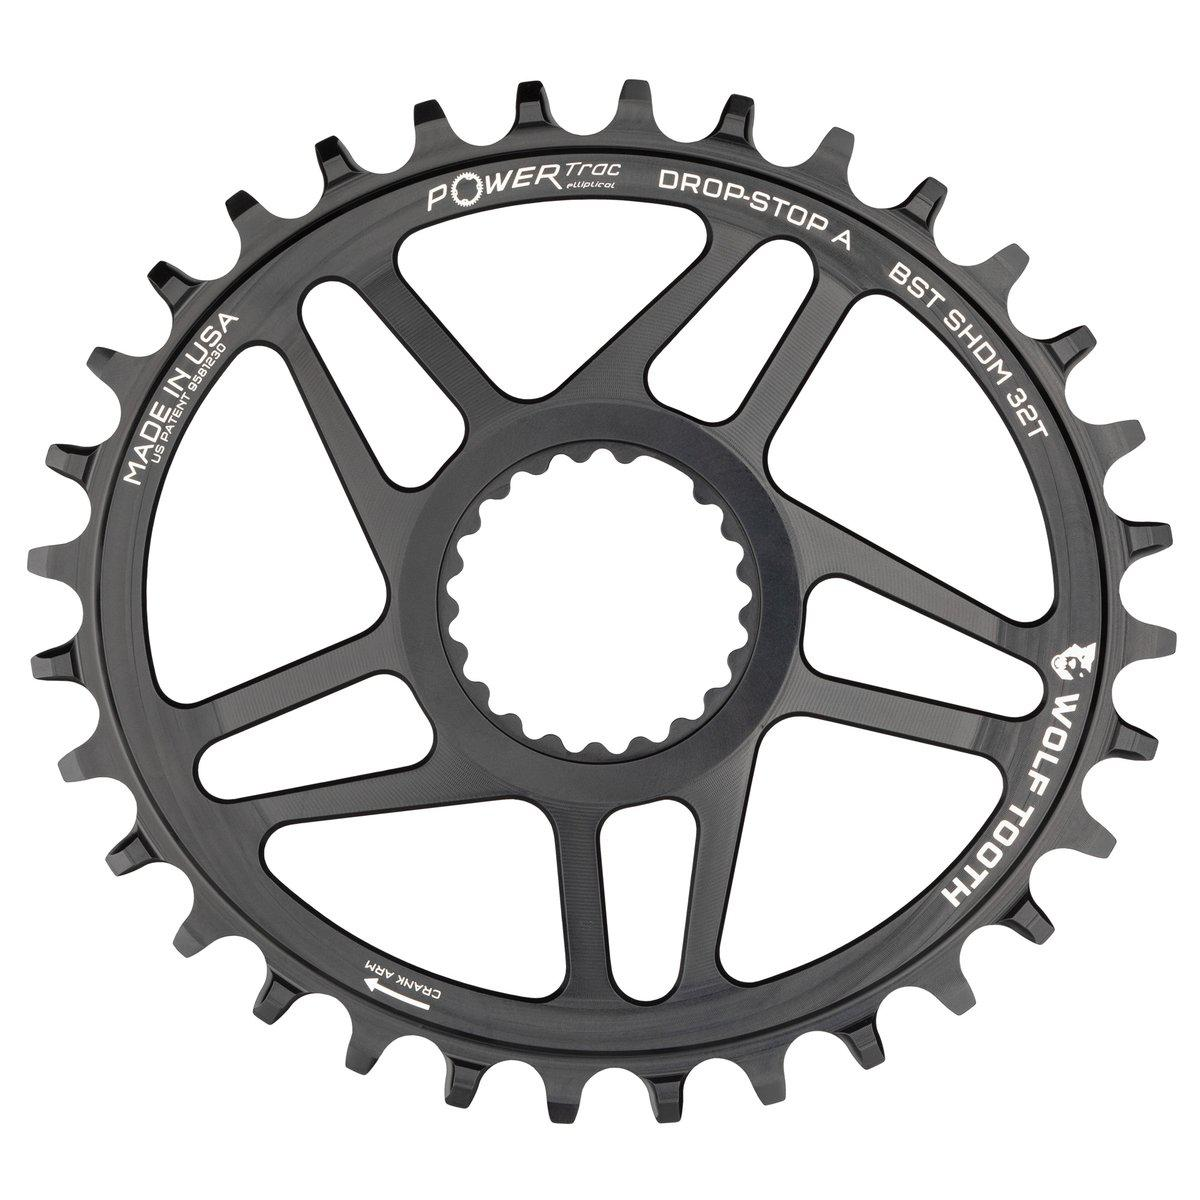 Wolf Tooth-Wolf Tooth Elliptical Direct Mount Chainrings for Shimano Cranks-Black-Shimano Boost 32T-WTOVALSHDM32BST-saddleback-elite-performance-cycling